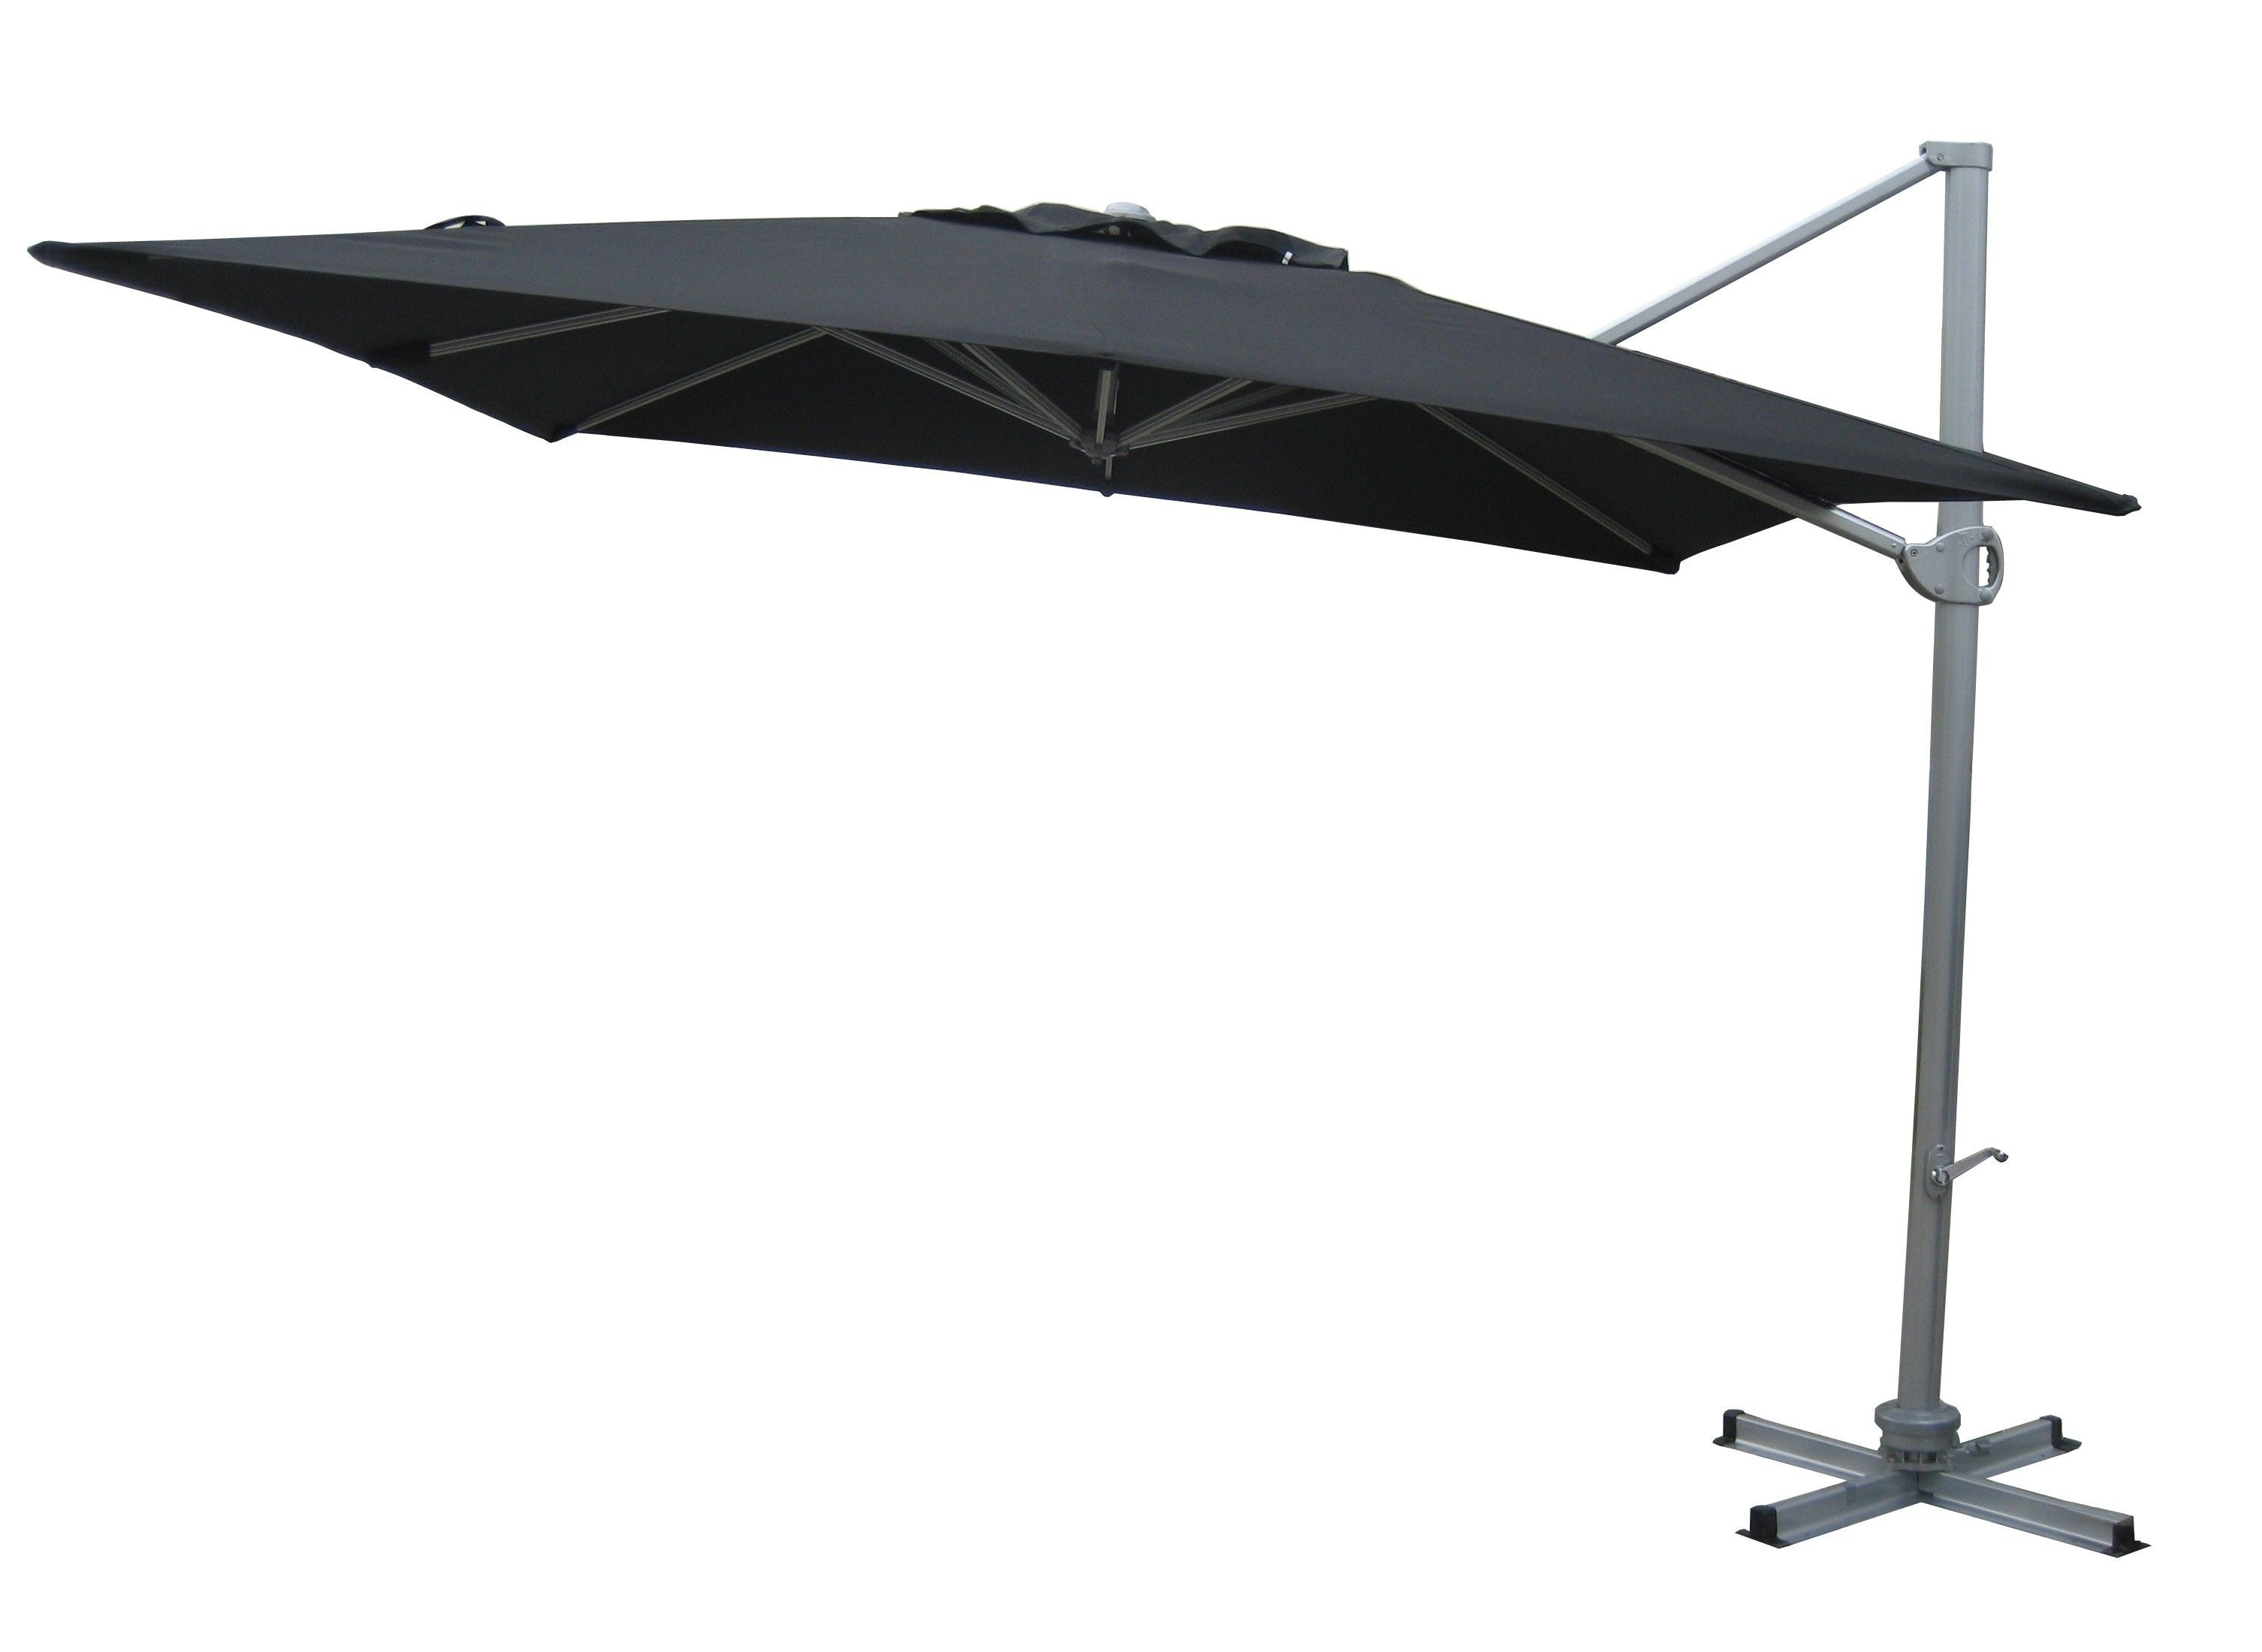 Black Patio Umbrellas In Most Popular Best Cantilever Patio Umbrella Luxury Cantilever Patio Umbrellas (View 5 of 20)